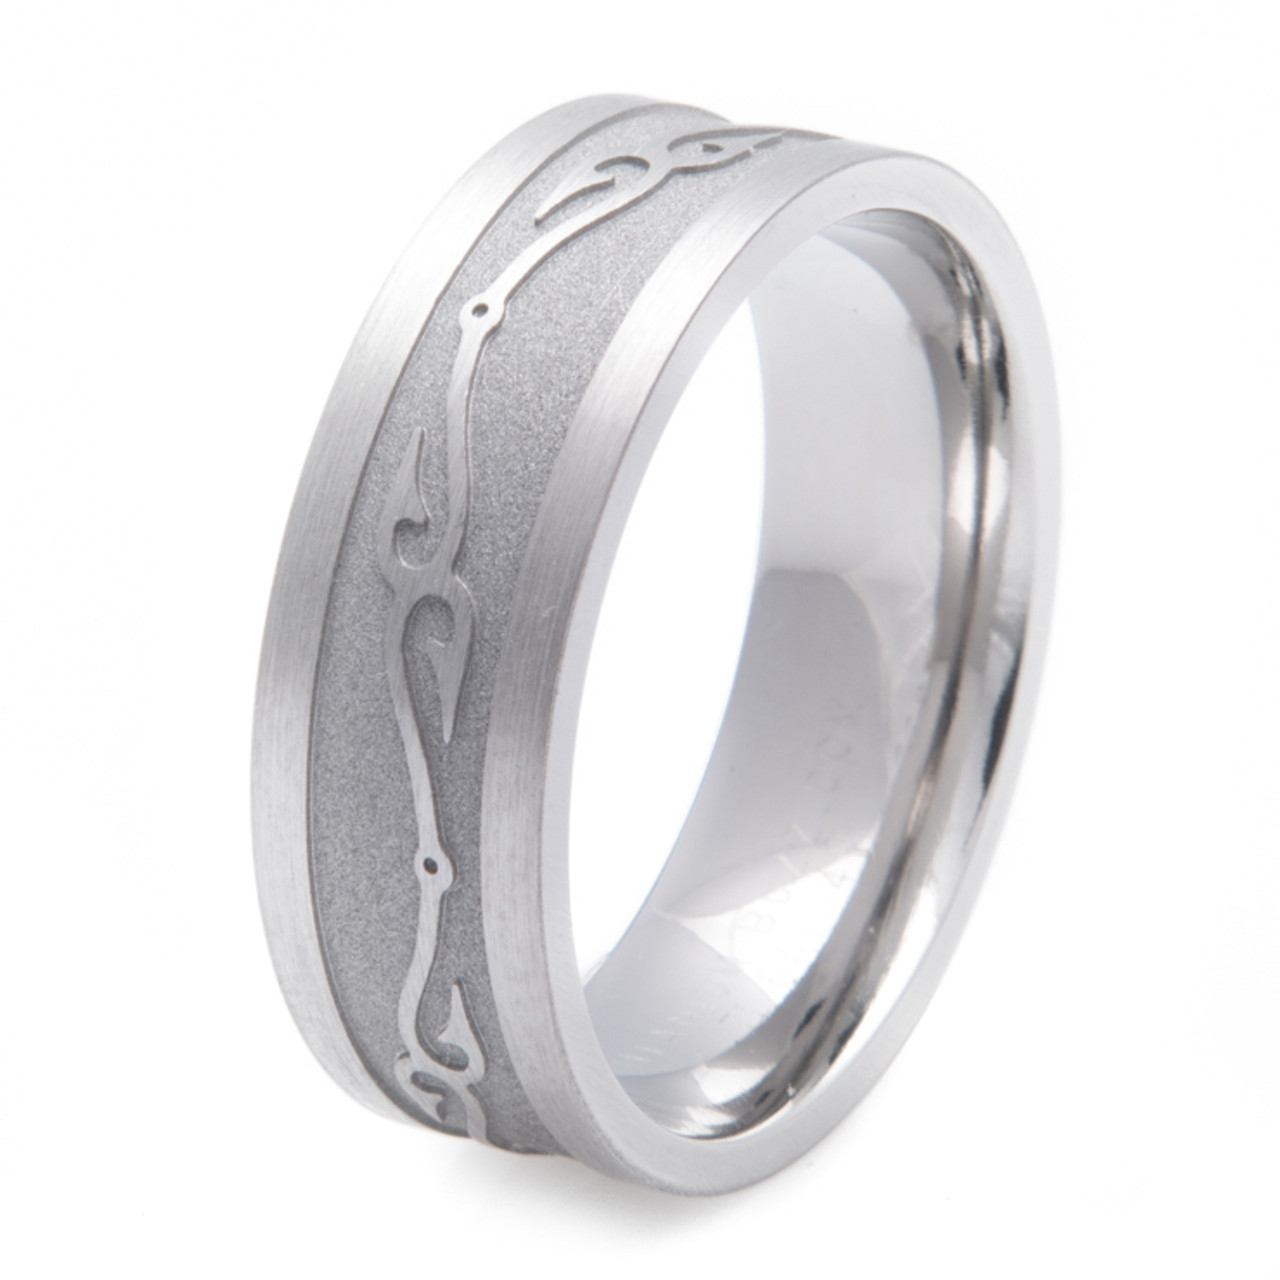 Titanium Connected Fish Hooks Wedding Ring Titanium Buzz